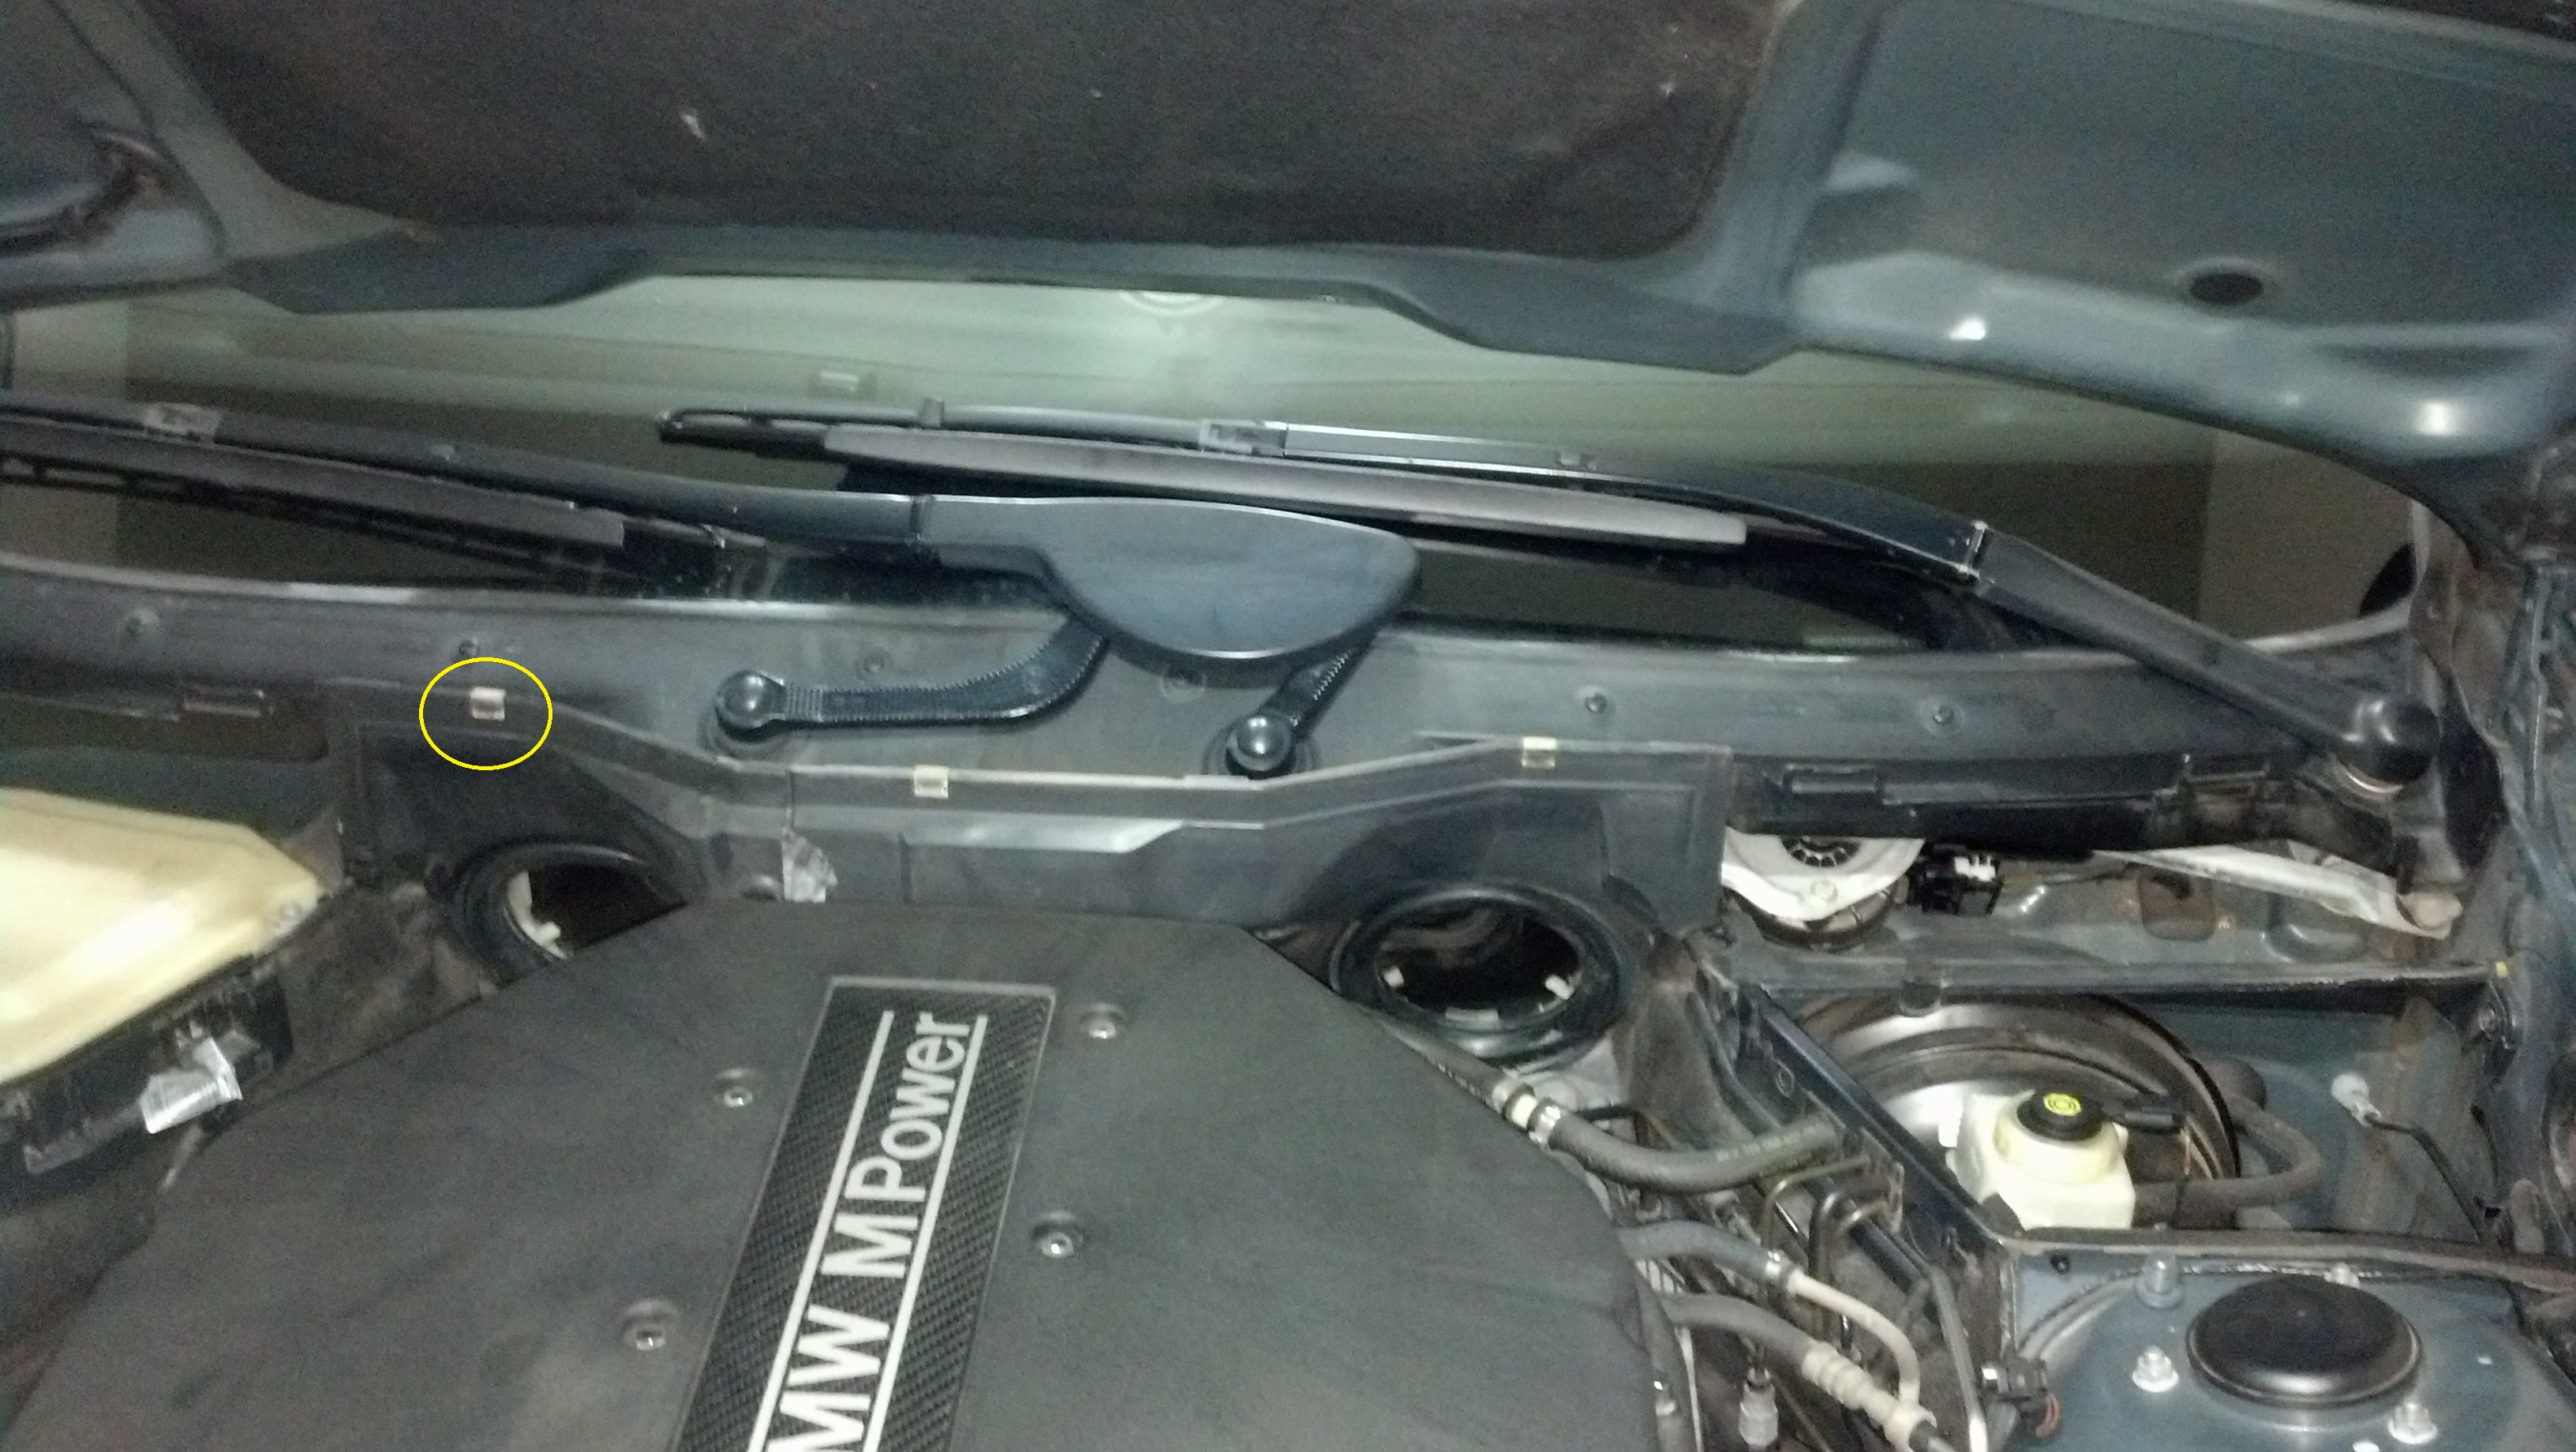 E39 - Replacement of the Left and Right Firewall Covers-img_20131130_191055_388a.jpg